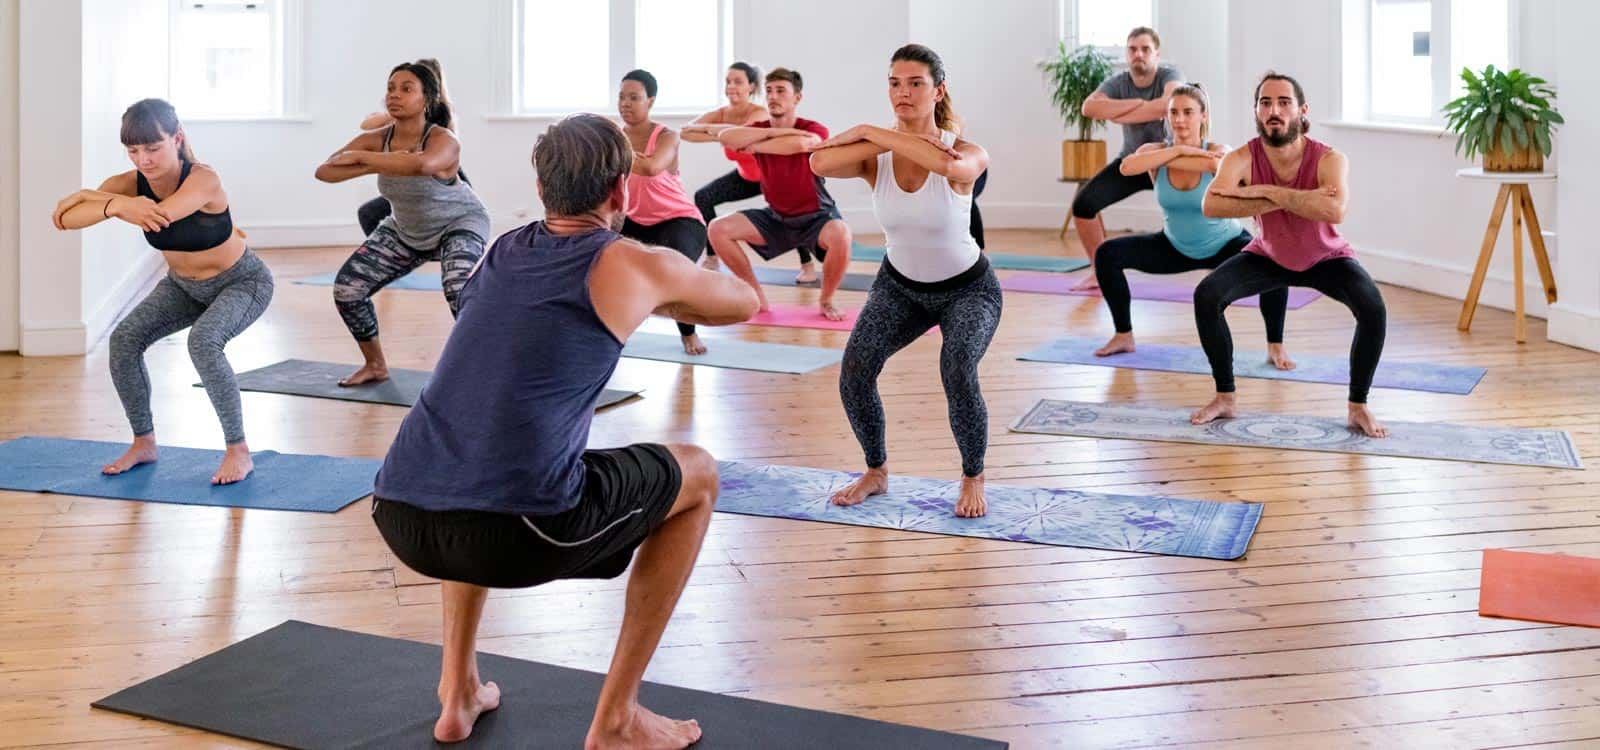 A man leads a group fitness class that's squatting in front of him, indicating he pursued the business idea of becoming a fitness instructor or trainer